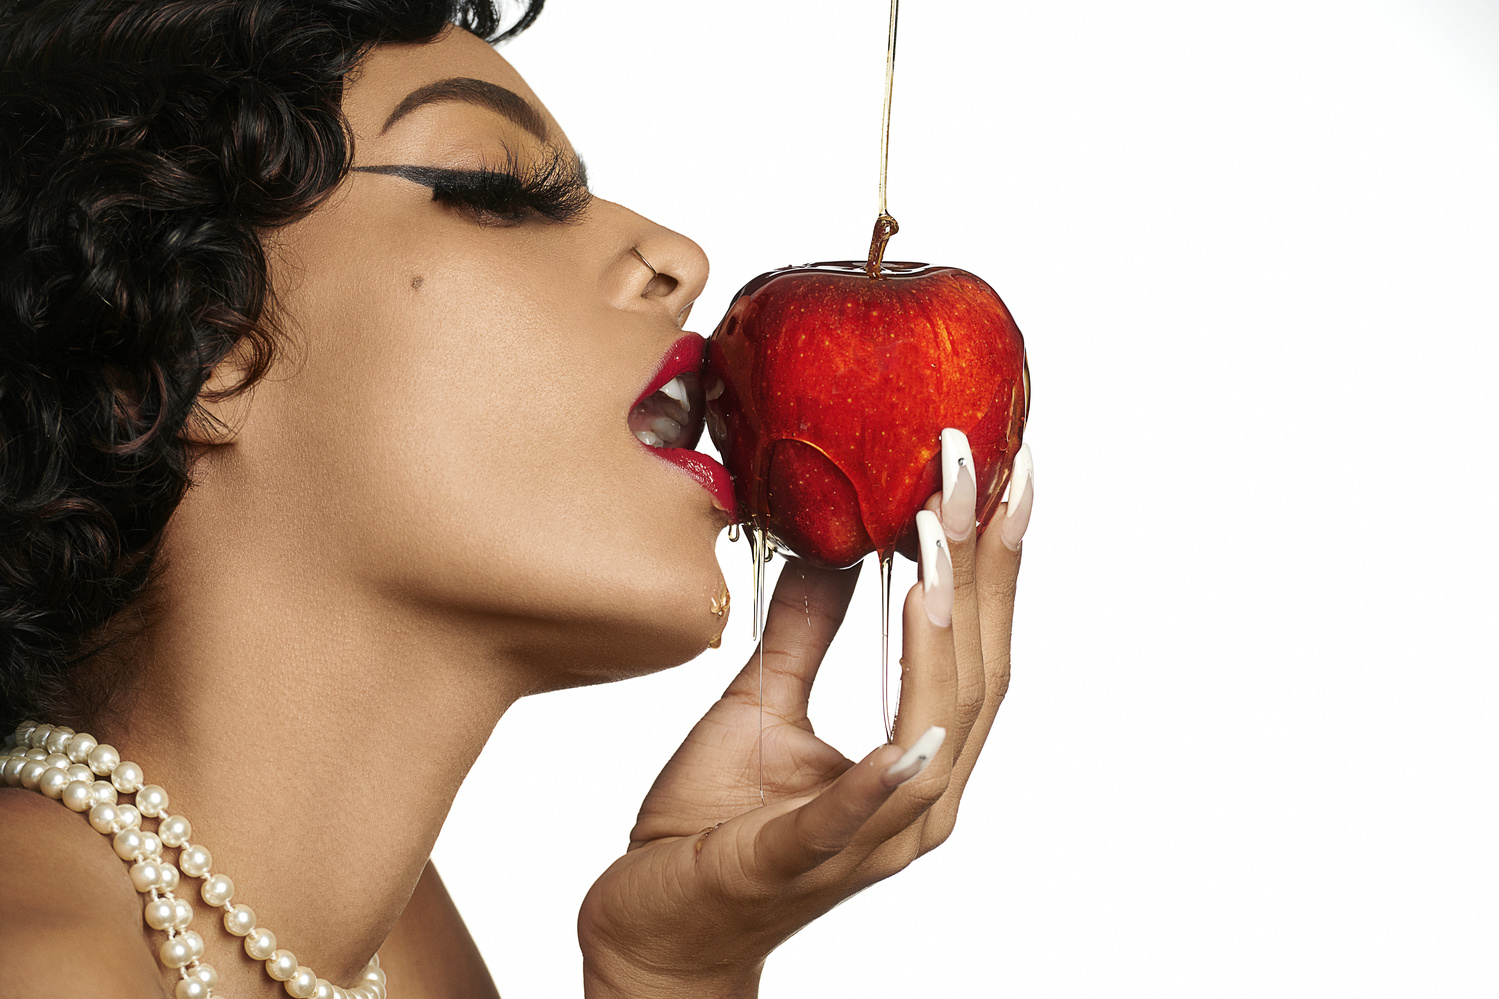 Red Delicious by Eric Snyder